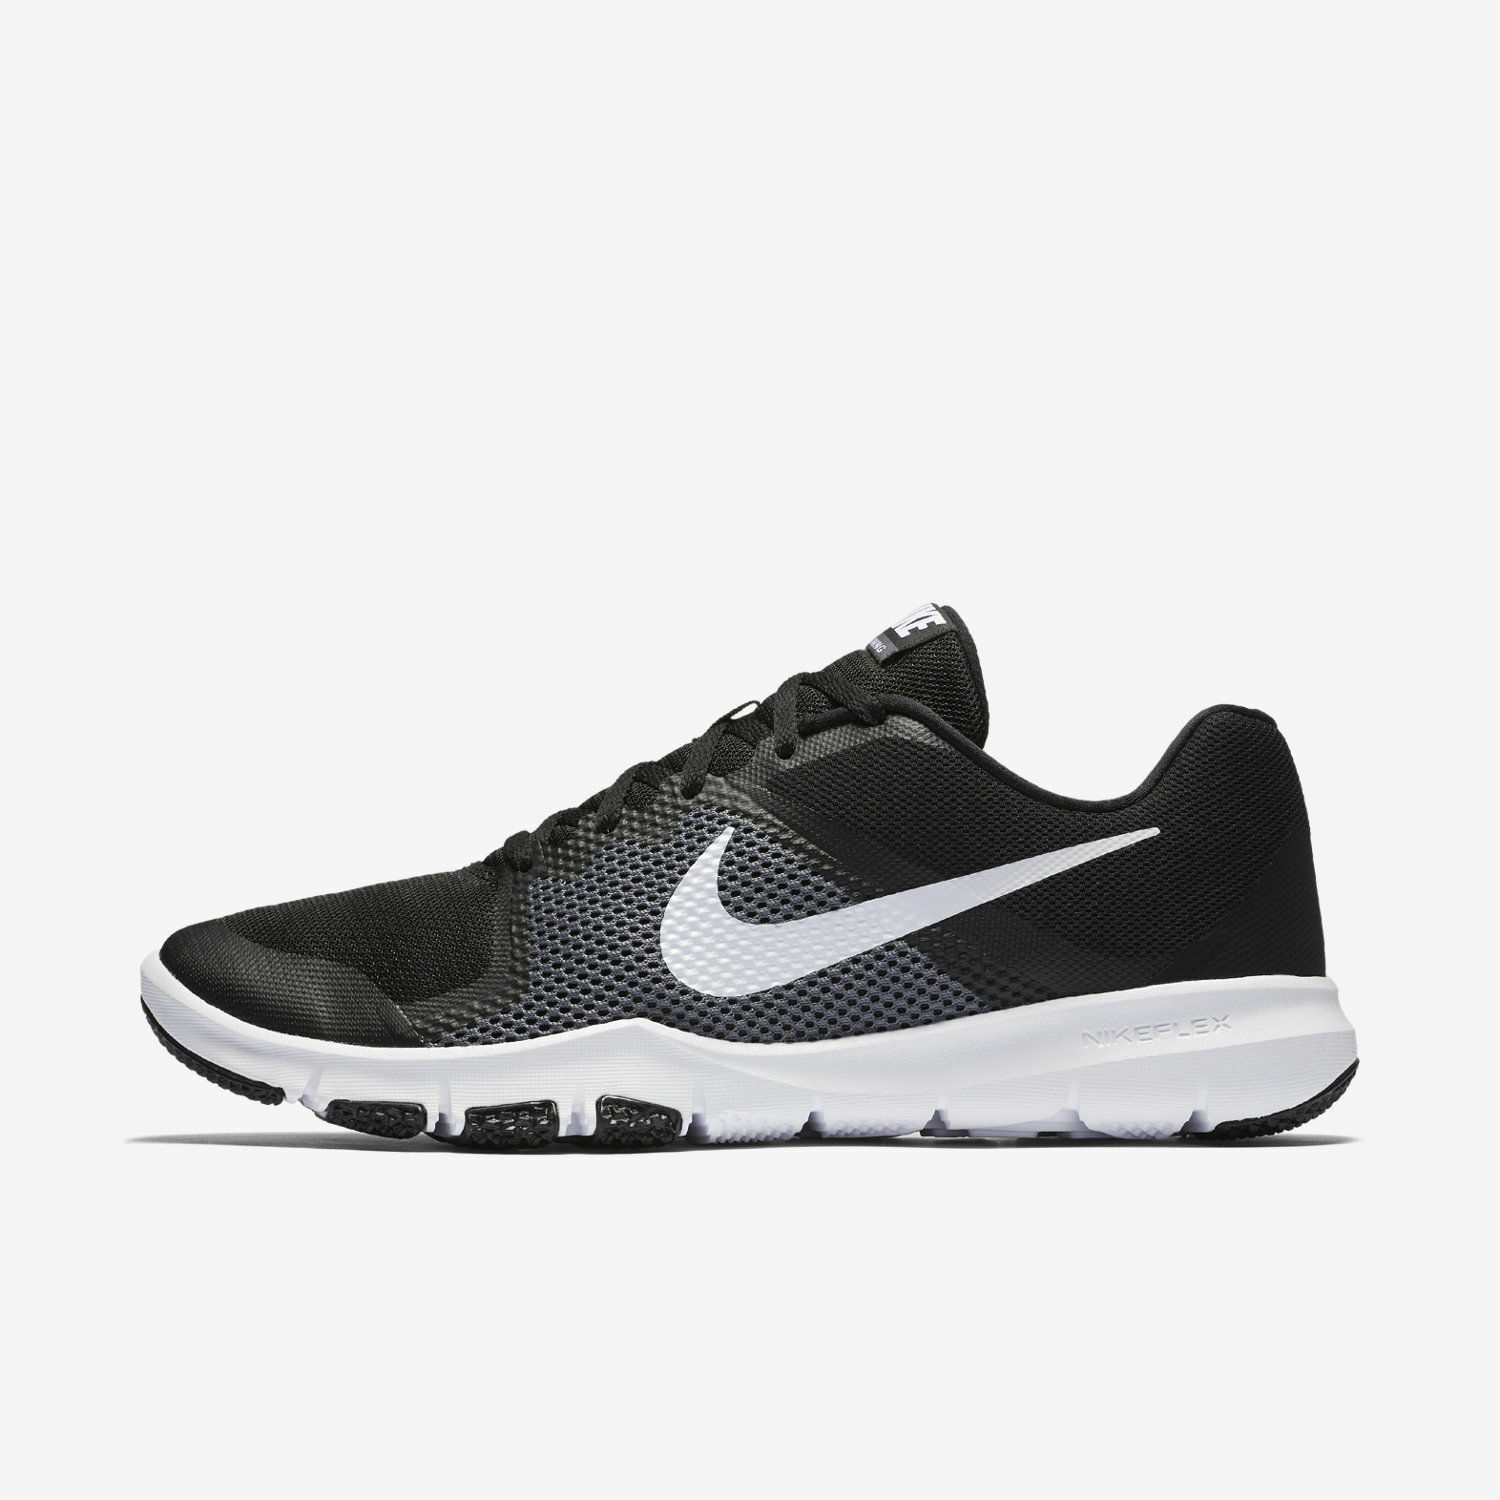 NIKE MEN'S FLEX CONTROL SIZE 15 010 black white grey 898459 010 15 8db729